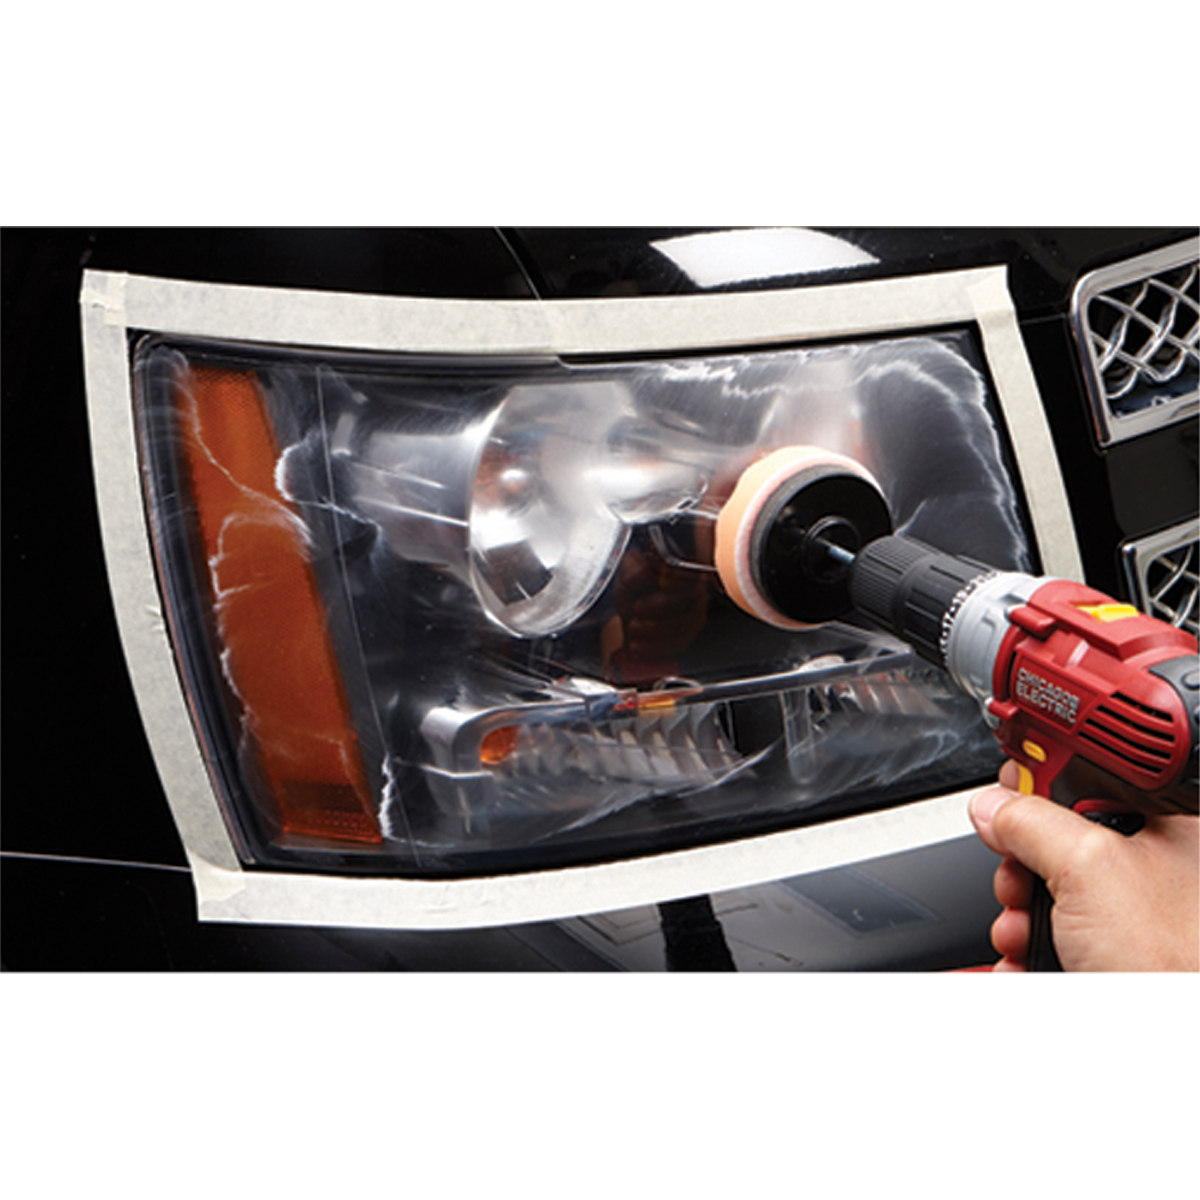 Deluxe lens renewal system - Car interior plastic scratch remover ...